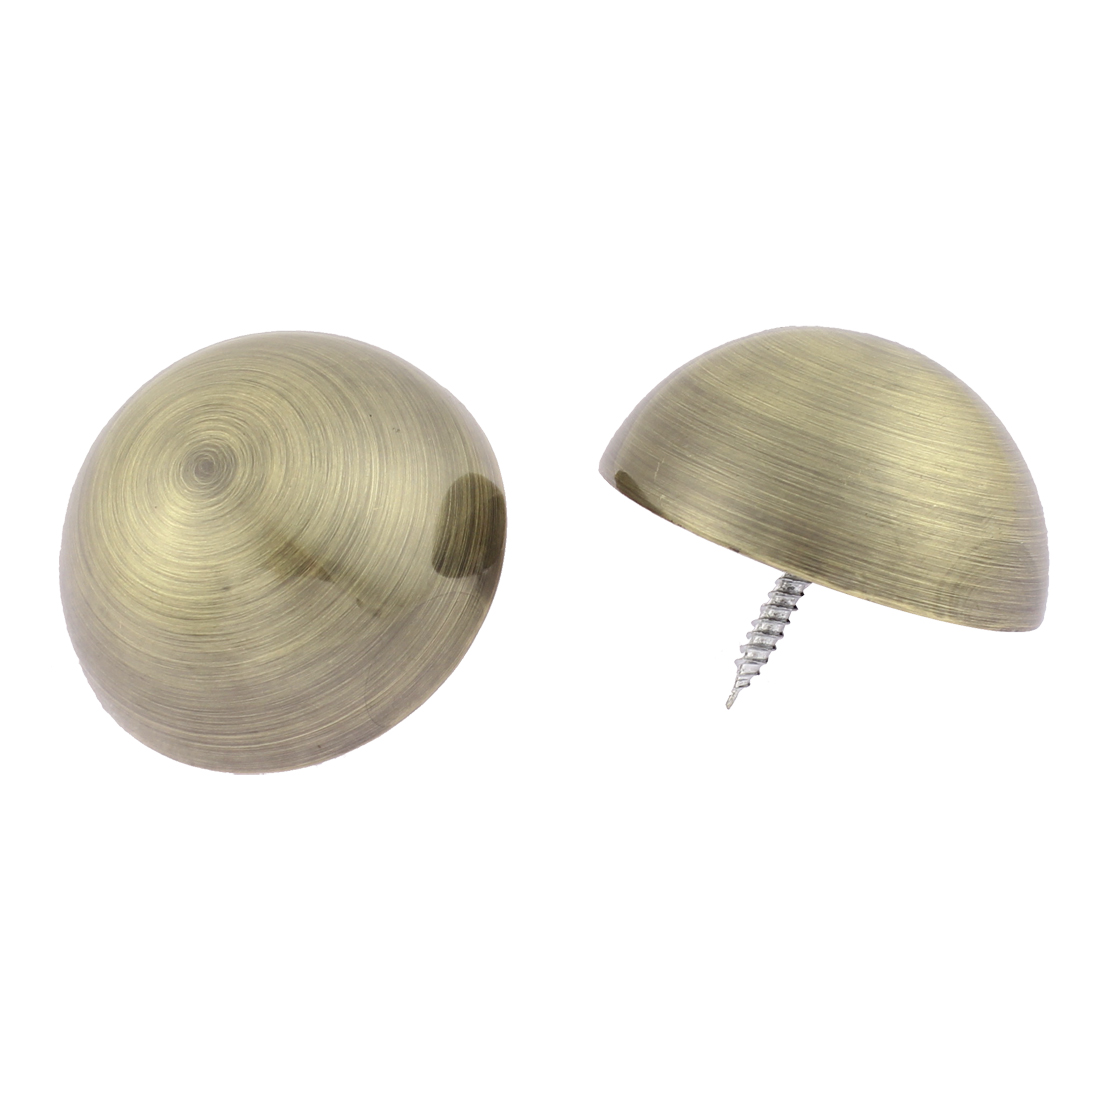 2pcs 46mm Dia Metal Semicircle Glass Mirror Screw Nail Decor Bronze Tone